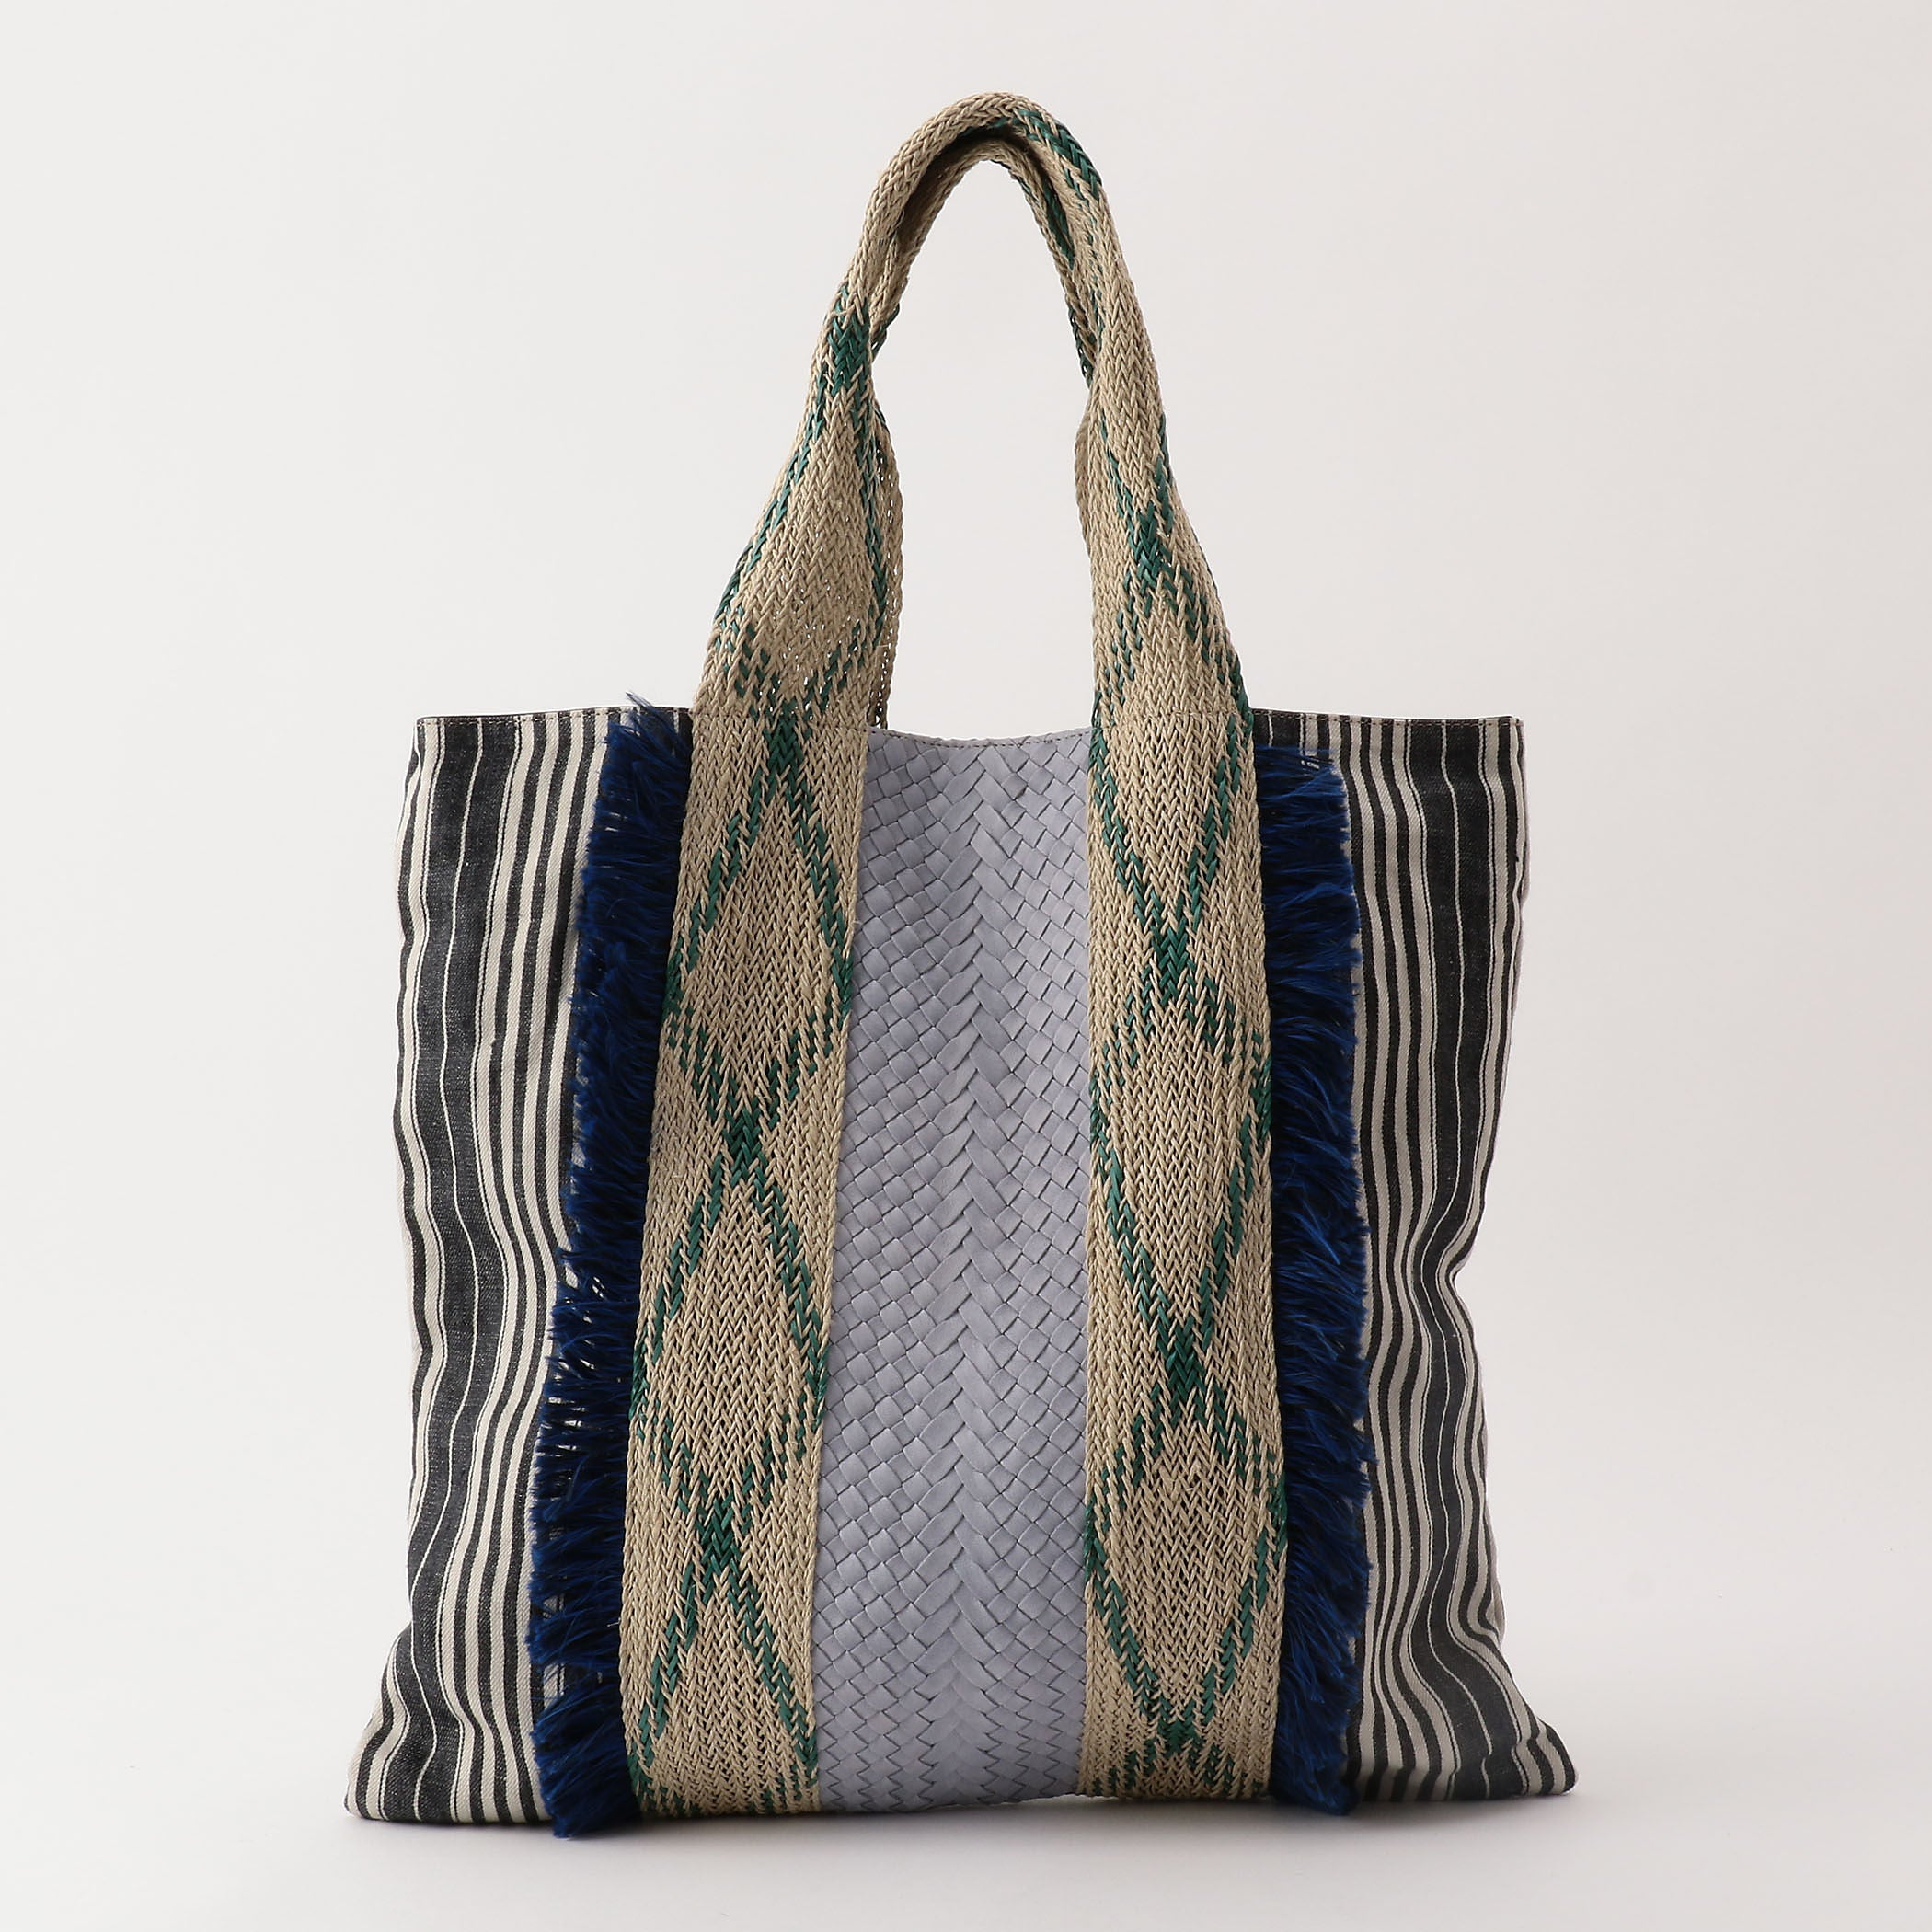 Feria Leather/Linen Tote in Lavender